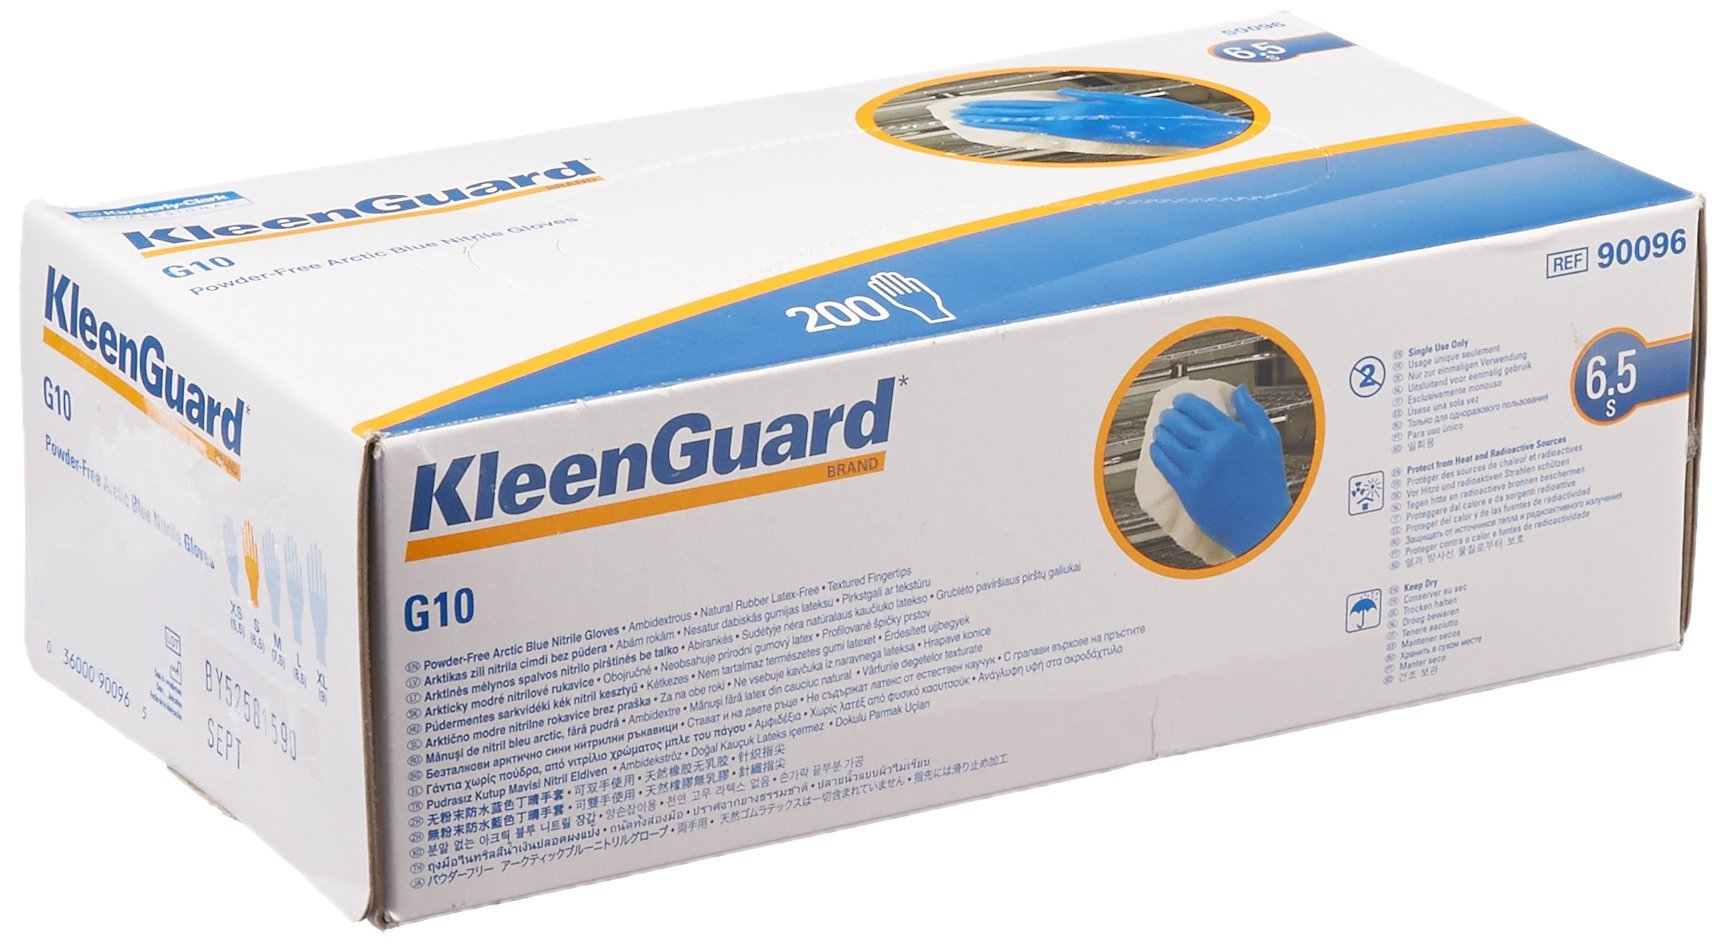 Kimberly Clark Safety 90096 KLEENGUARD G10 Arctic Blue Nitrile Glove, Small (Pack of 200)